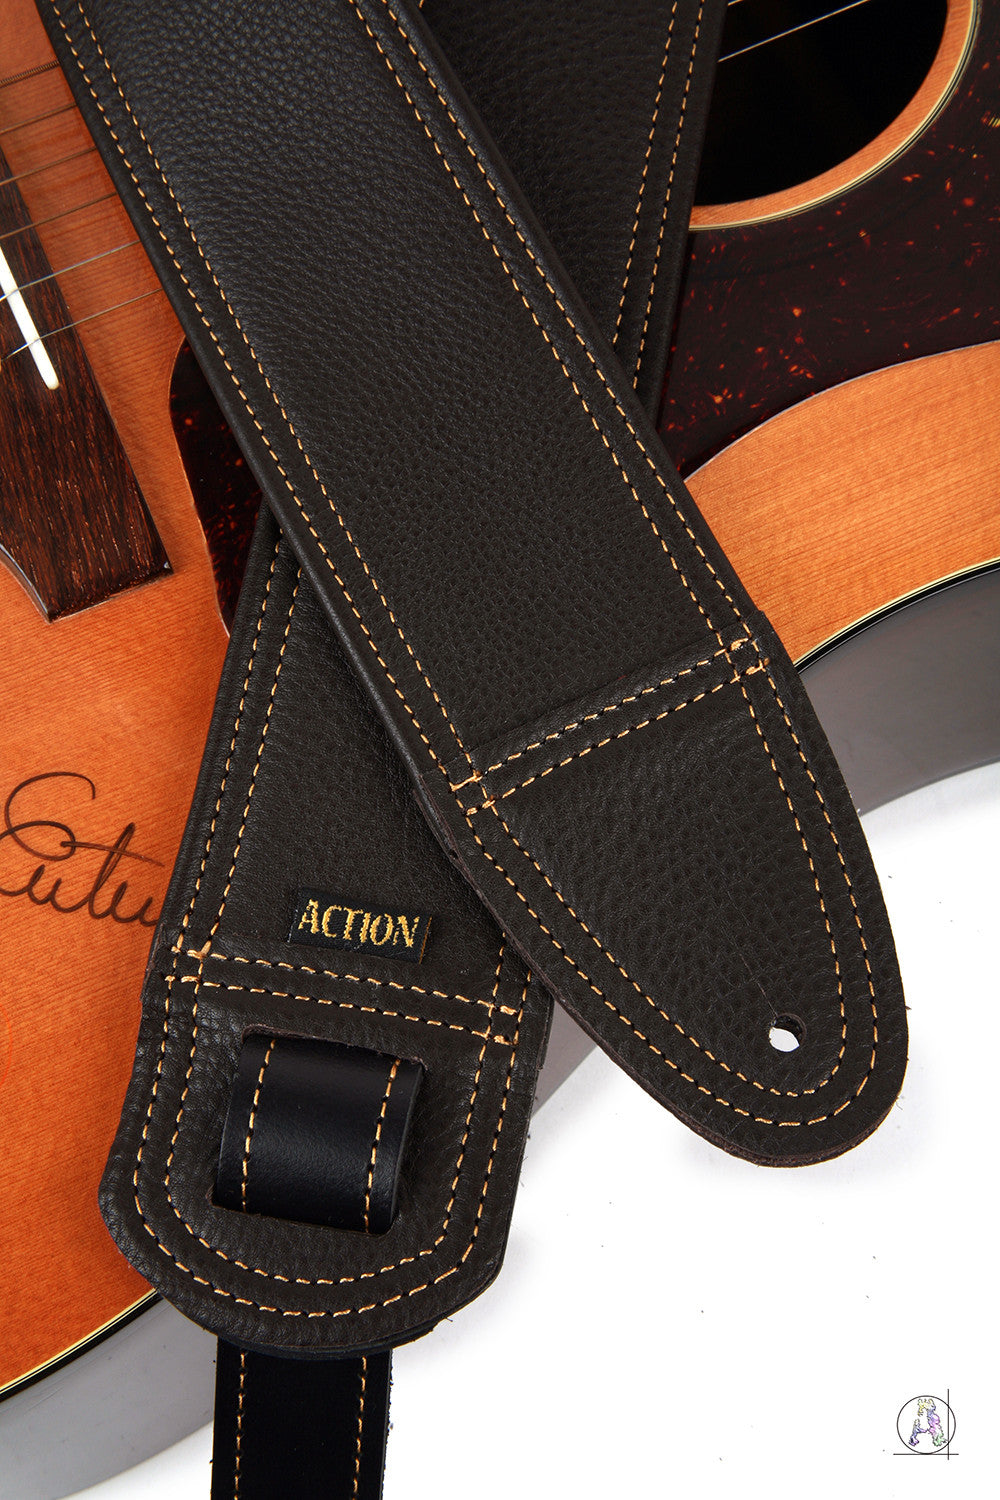 Simply Class Dark Brown with Gold Stitching Custom Guitar Strap